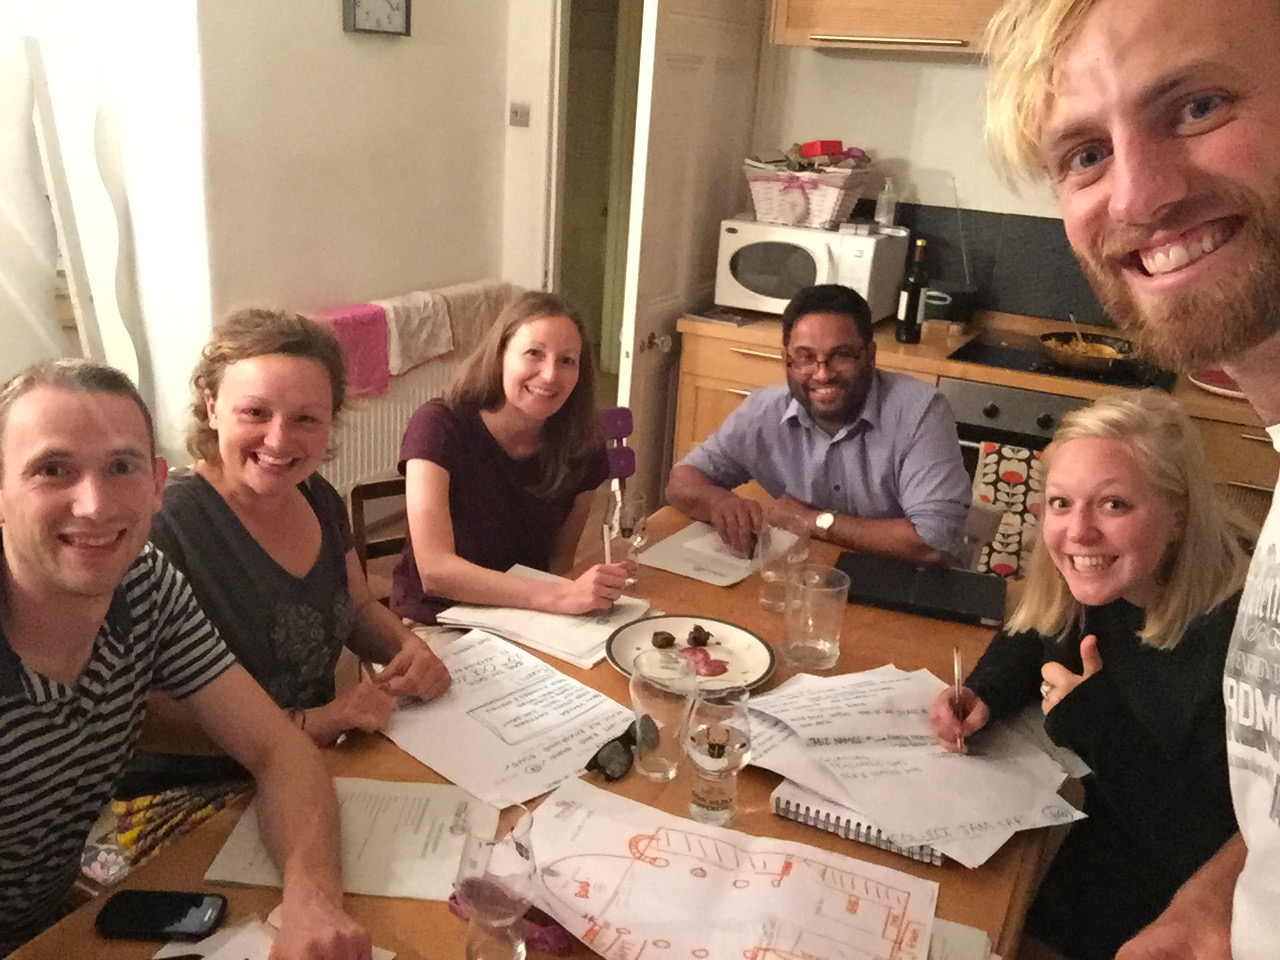 From left to right:Chris Boddy (UK director),Megan Walters (Co-founder),Laura Richards (Treasurer),Danny John (Trustee),Laura Harris (Trustee & Events Co-ordinater),Mark Walters (Co-founder and Chair).Missing from the photo:Chris Collier (Secretary) and Martin Harris (Trustee)